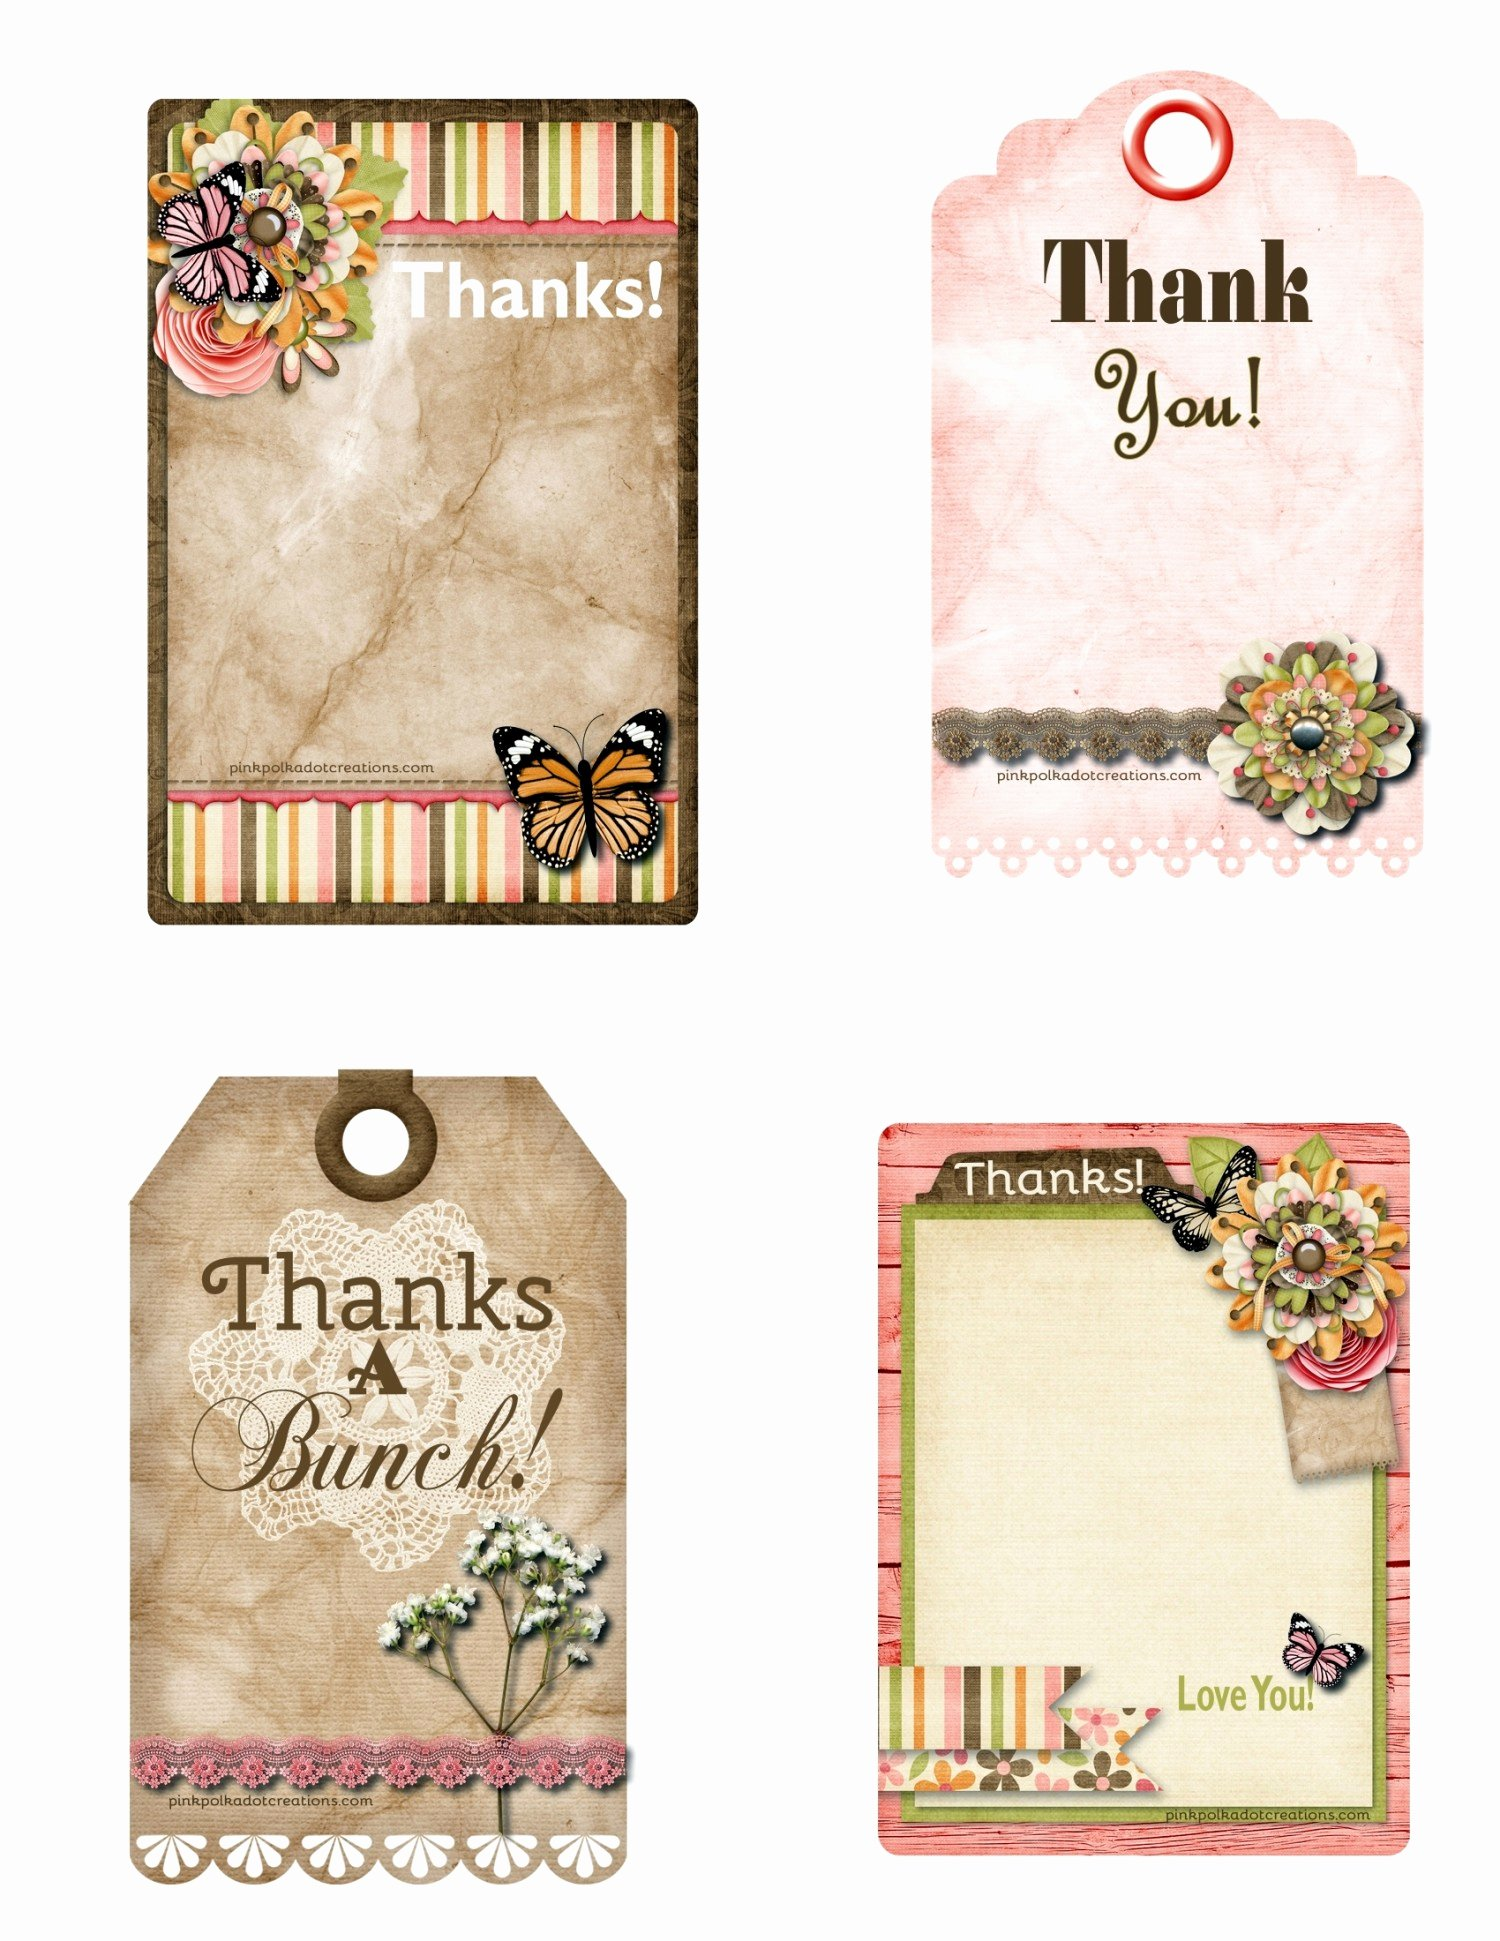 Printable Thank You Tags Elegant Printable Thank You Tags Pink Polka Dot Creations